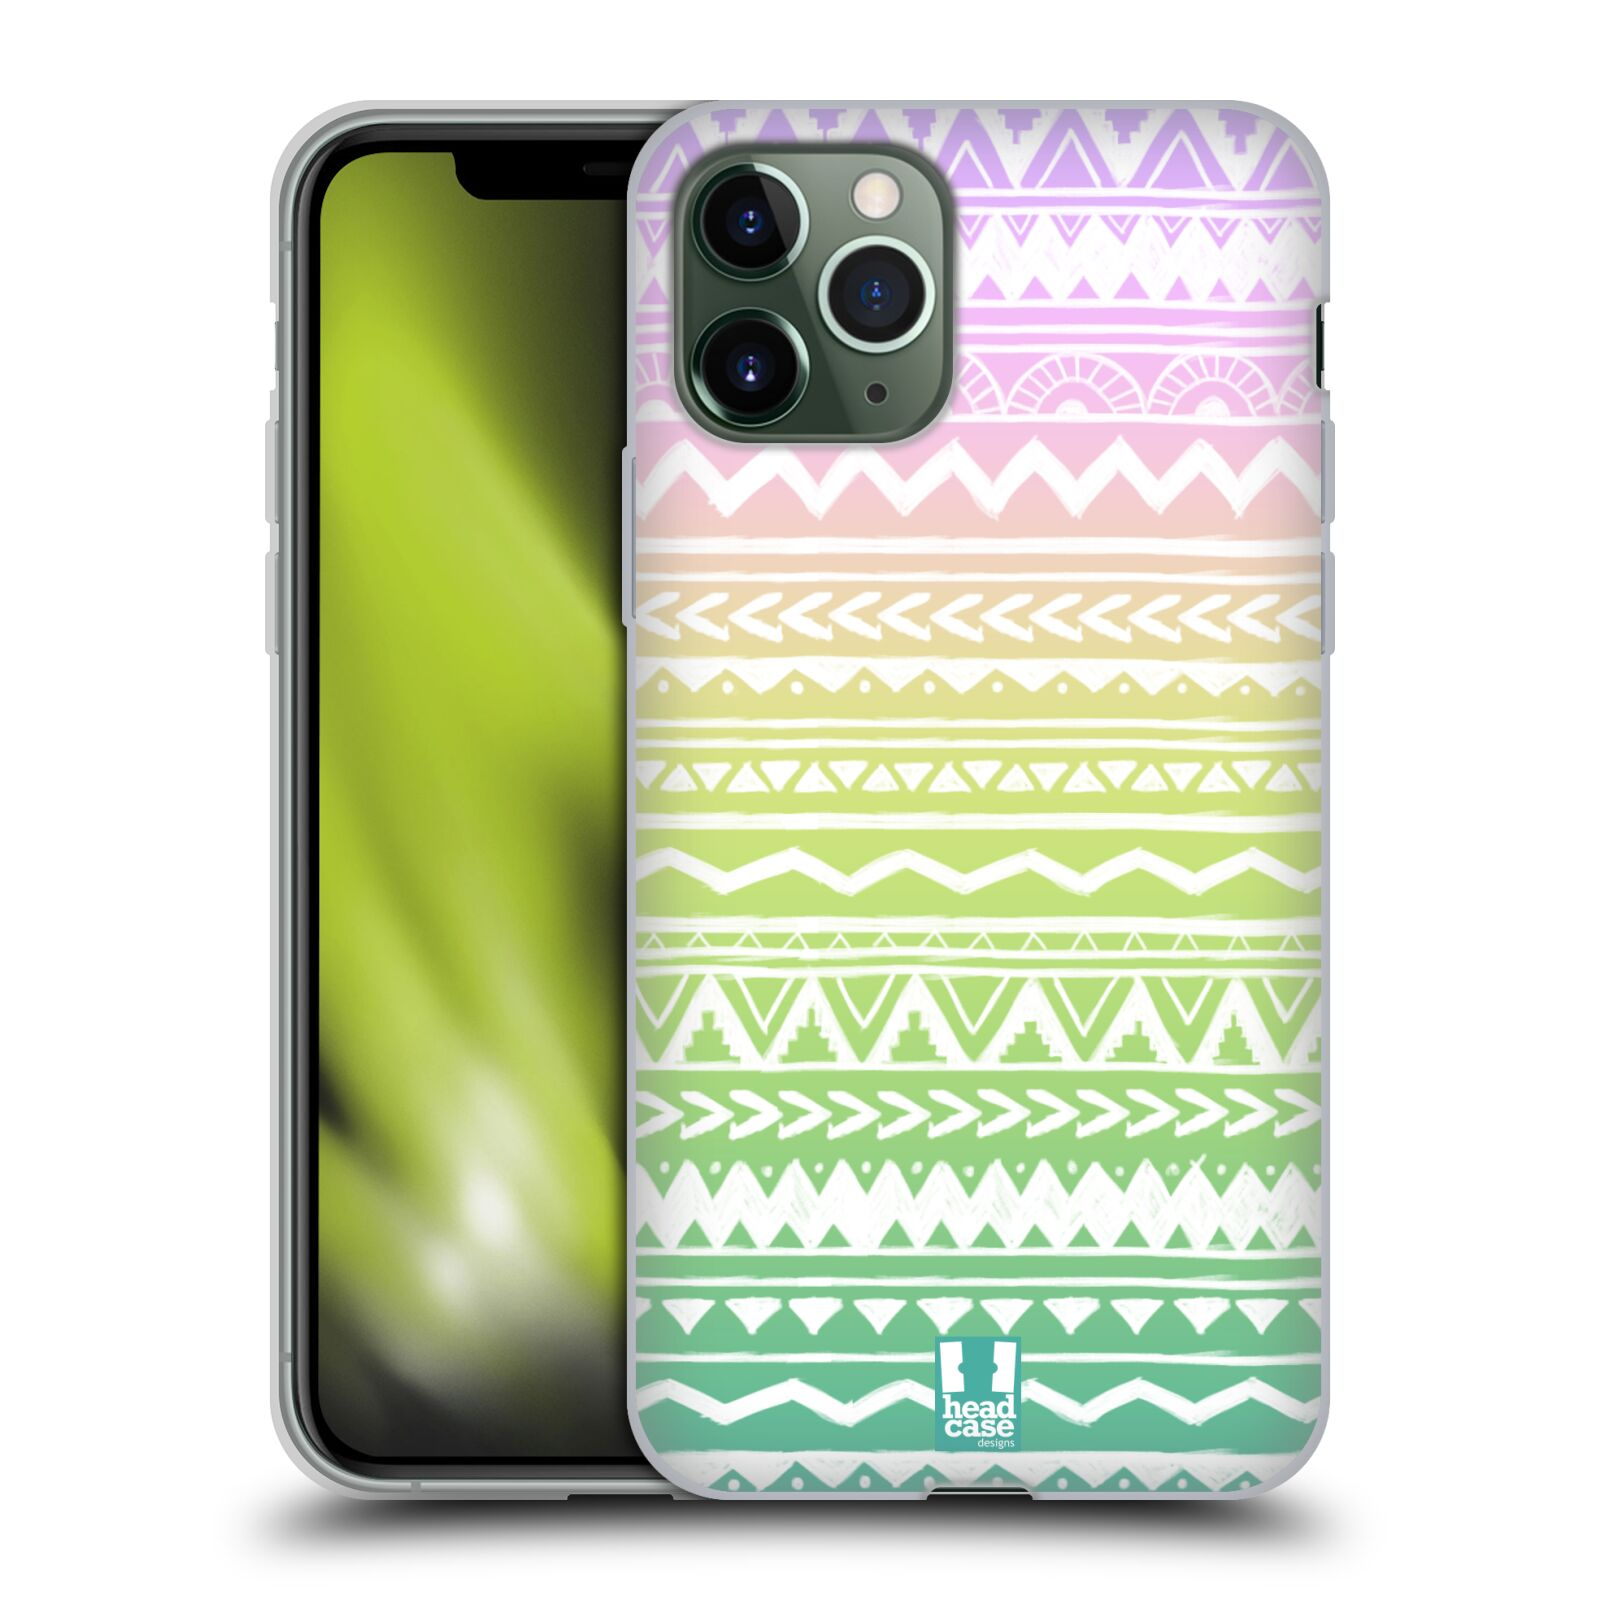 bazar obaly iphone 7 - Silikonové pouzdro na mobil Apple iPhone 11 Pro - Head Case - MIX AZTEC DRAWN